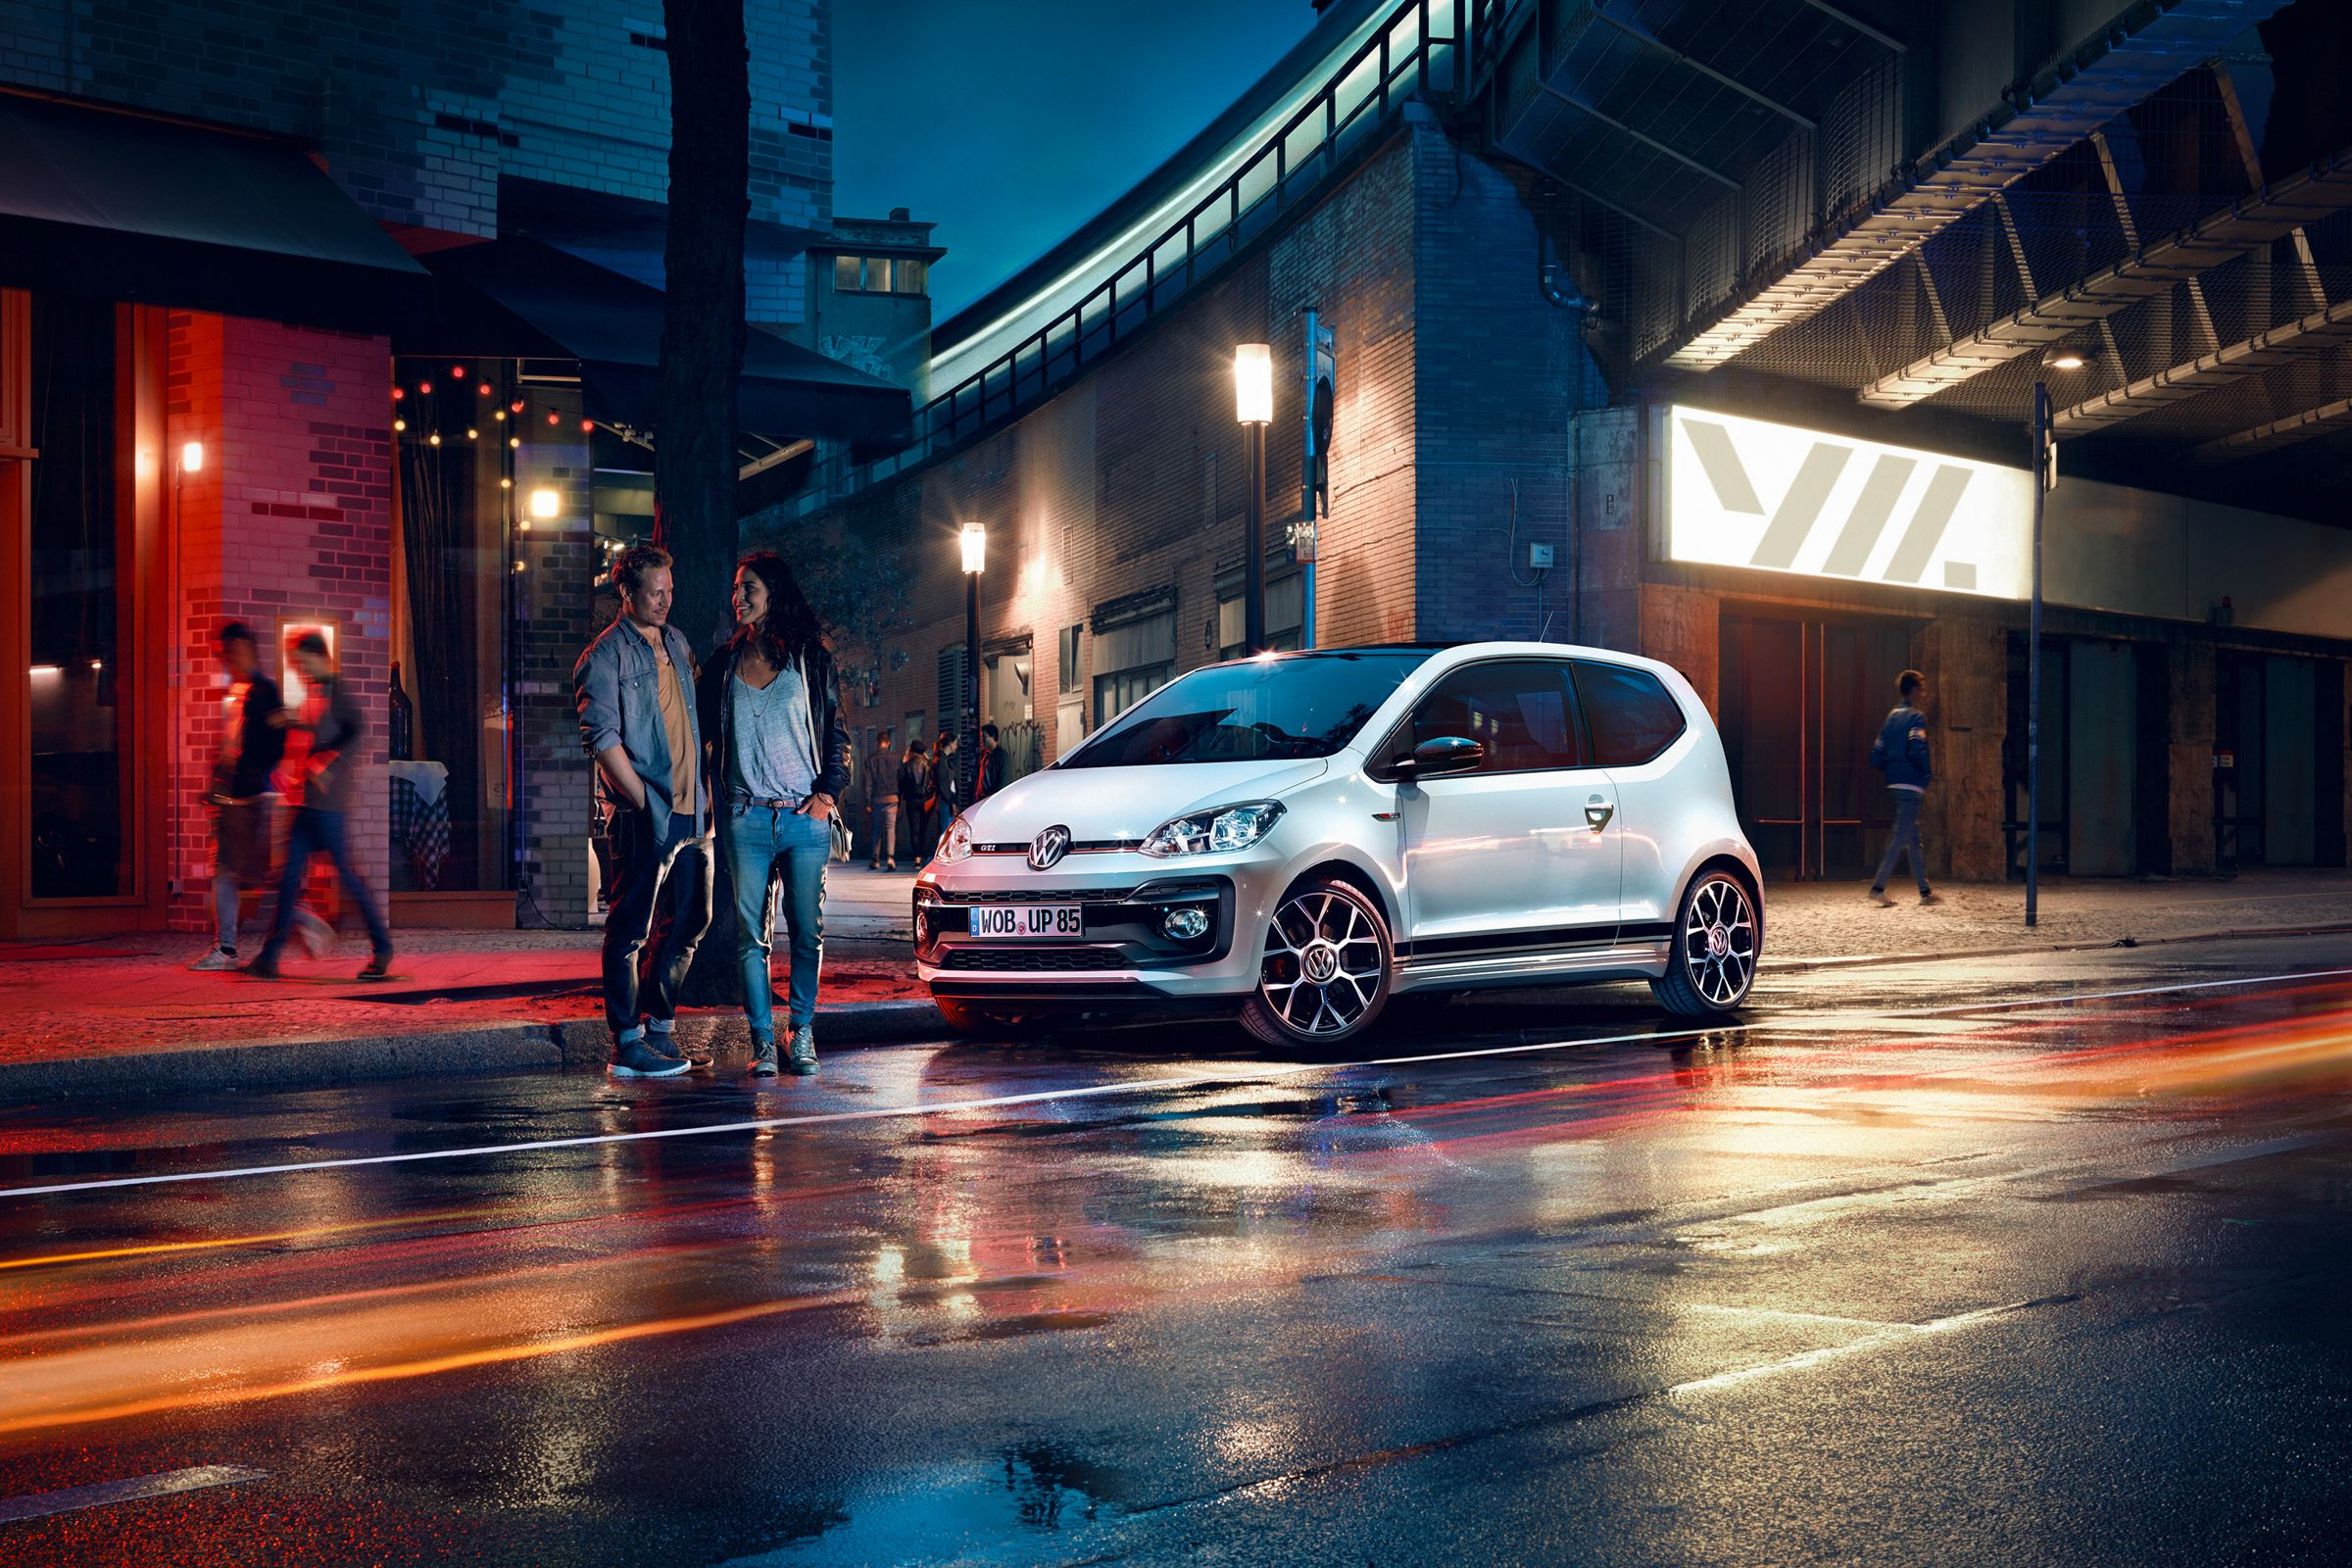 The All New Vw Up Gti Photographed In The Streets Of Berlin Vw